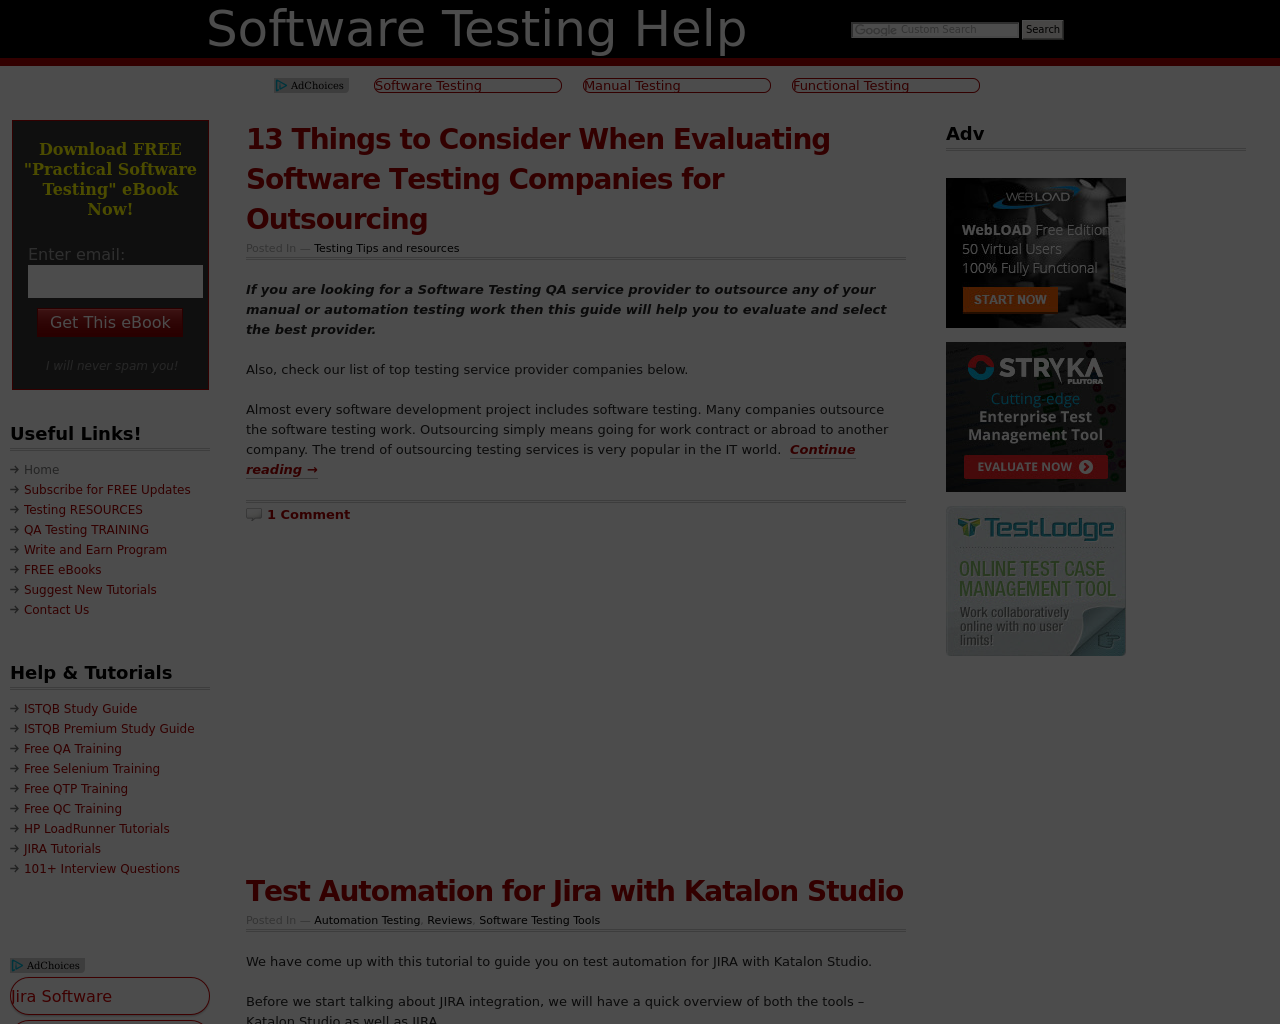 Software-Testing-Help-Advertising-Reviews-Pricing